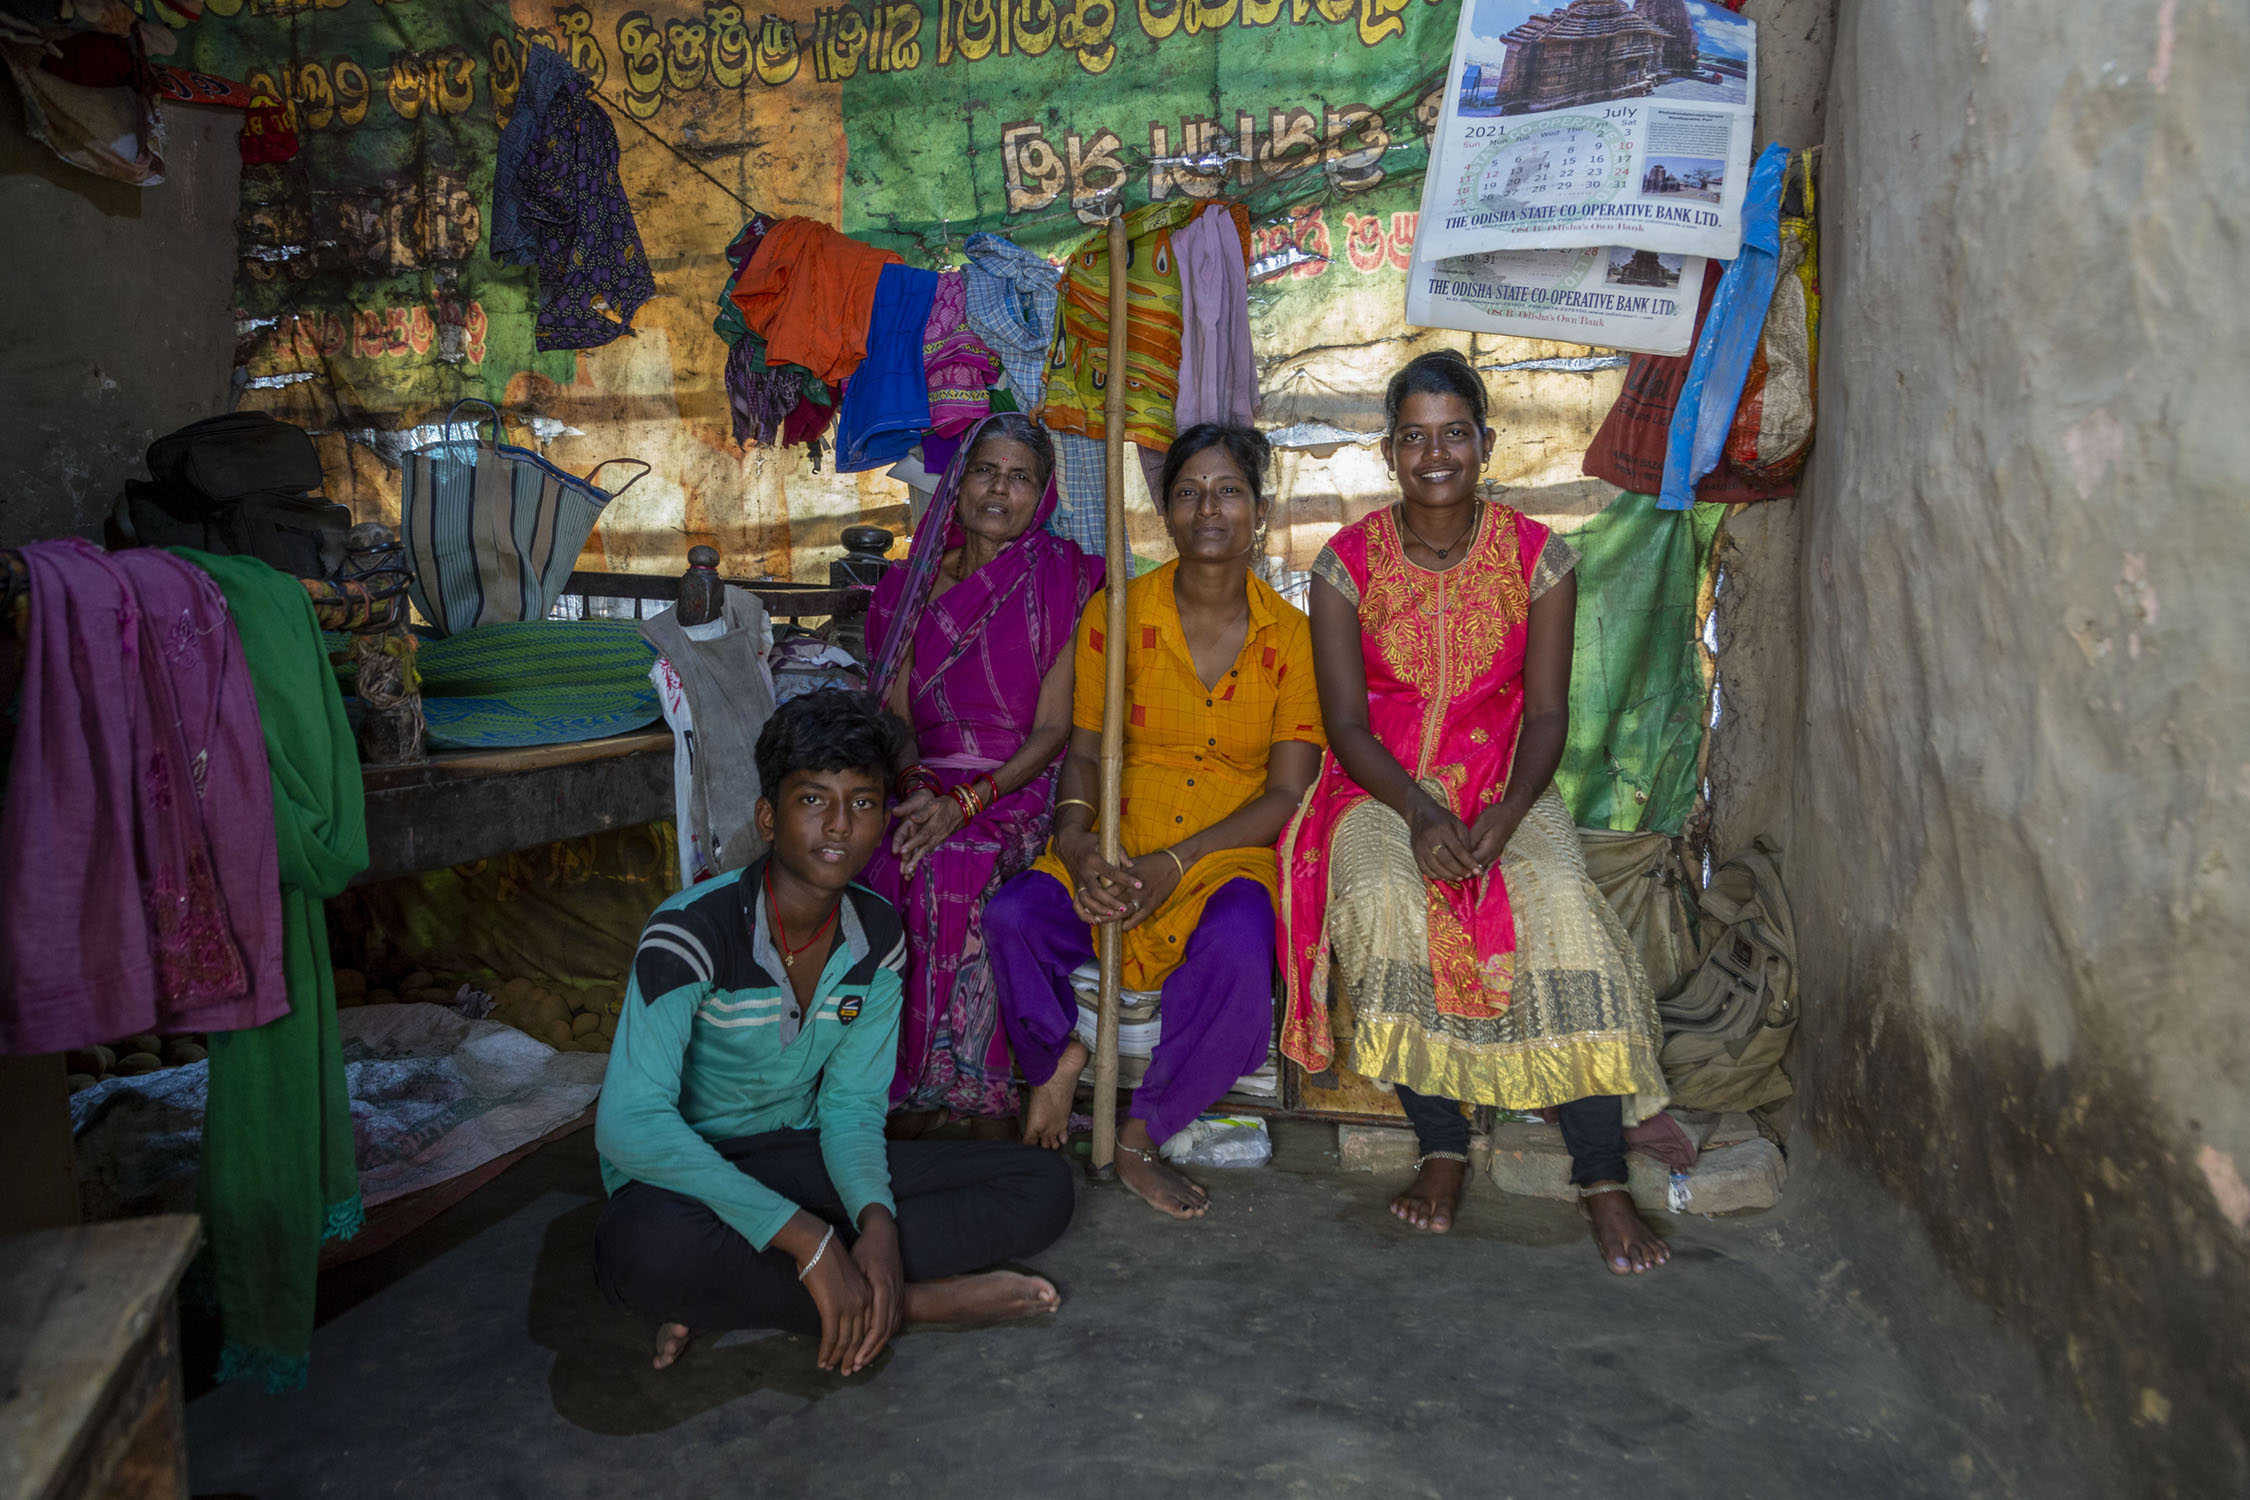 Koushalya poses with members of her family. Sitting cross-legged on the floor is her nephew Kanha Swain (14). Koushalya is seated in between her mother Puni Swain (71) and sister Tunamani Swain (28). Kanha is in a full-sleeved light blue T-shirt and dark trousers. Puni wears a purple sari with her head covered by the pallu. Koushalya wears an orange kameez and purple salwar. Tunamani wears a red and cream kameez and black churidar.